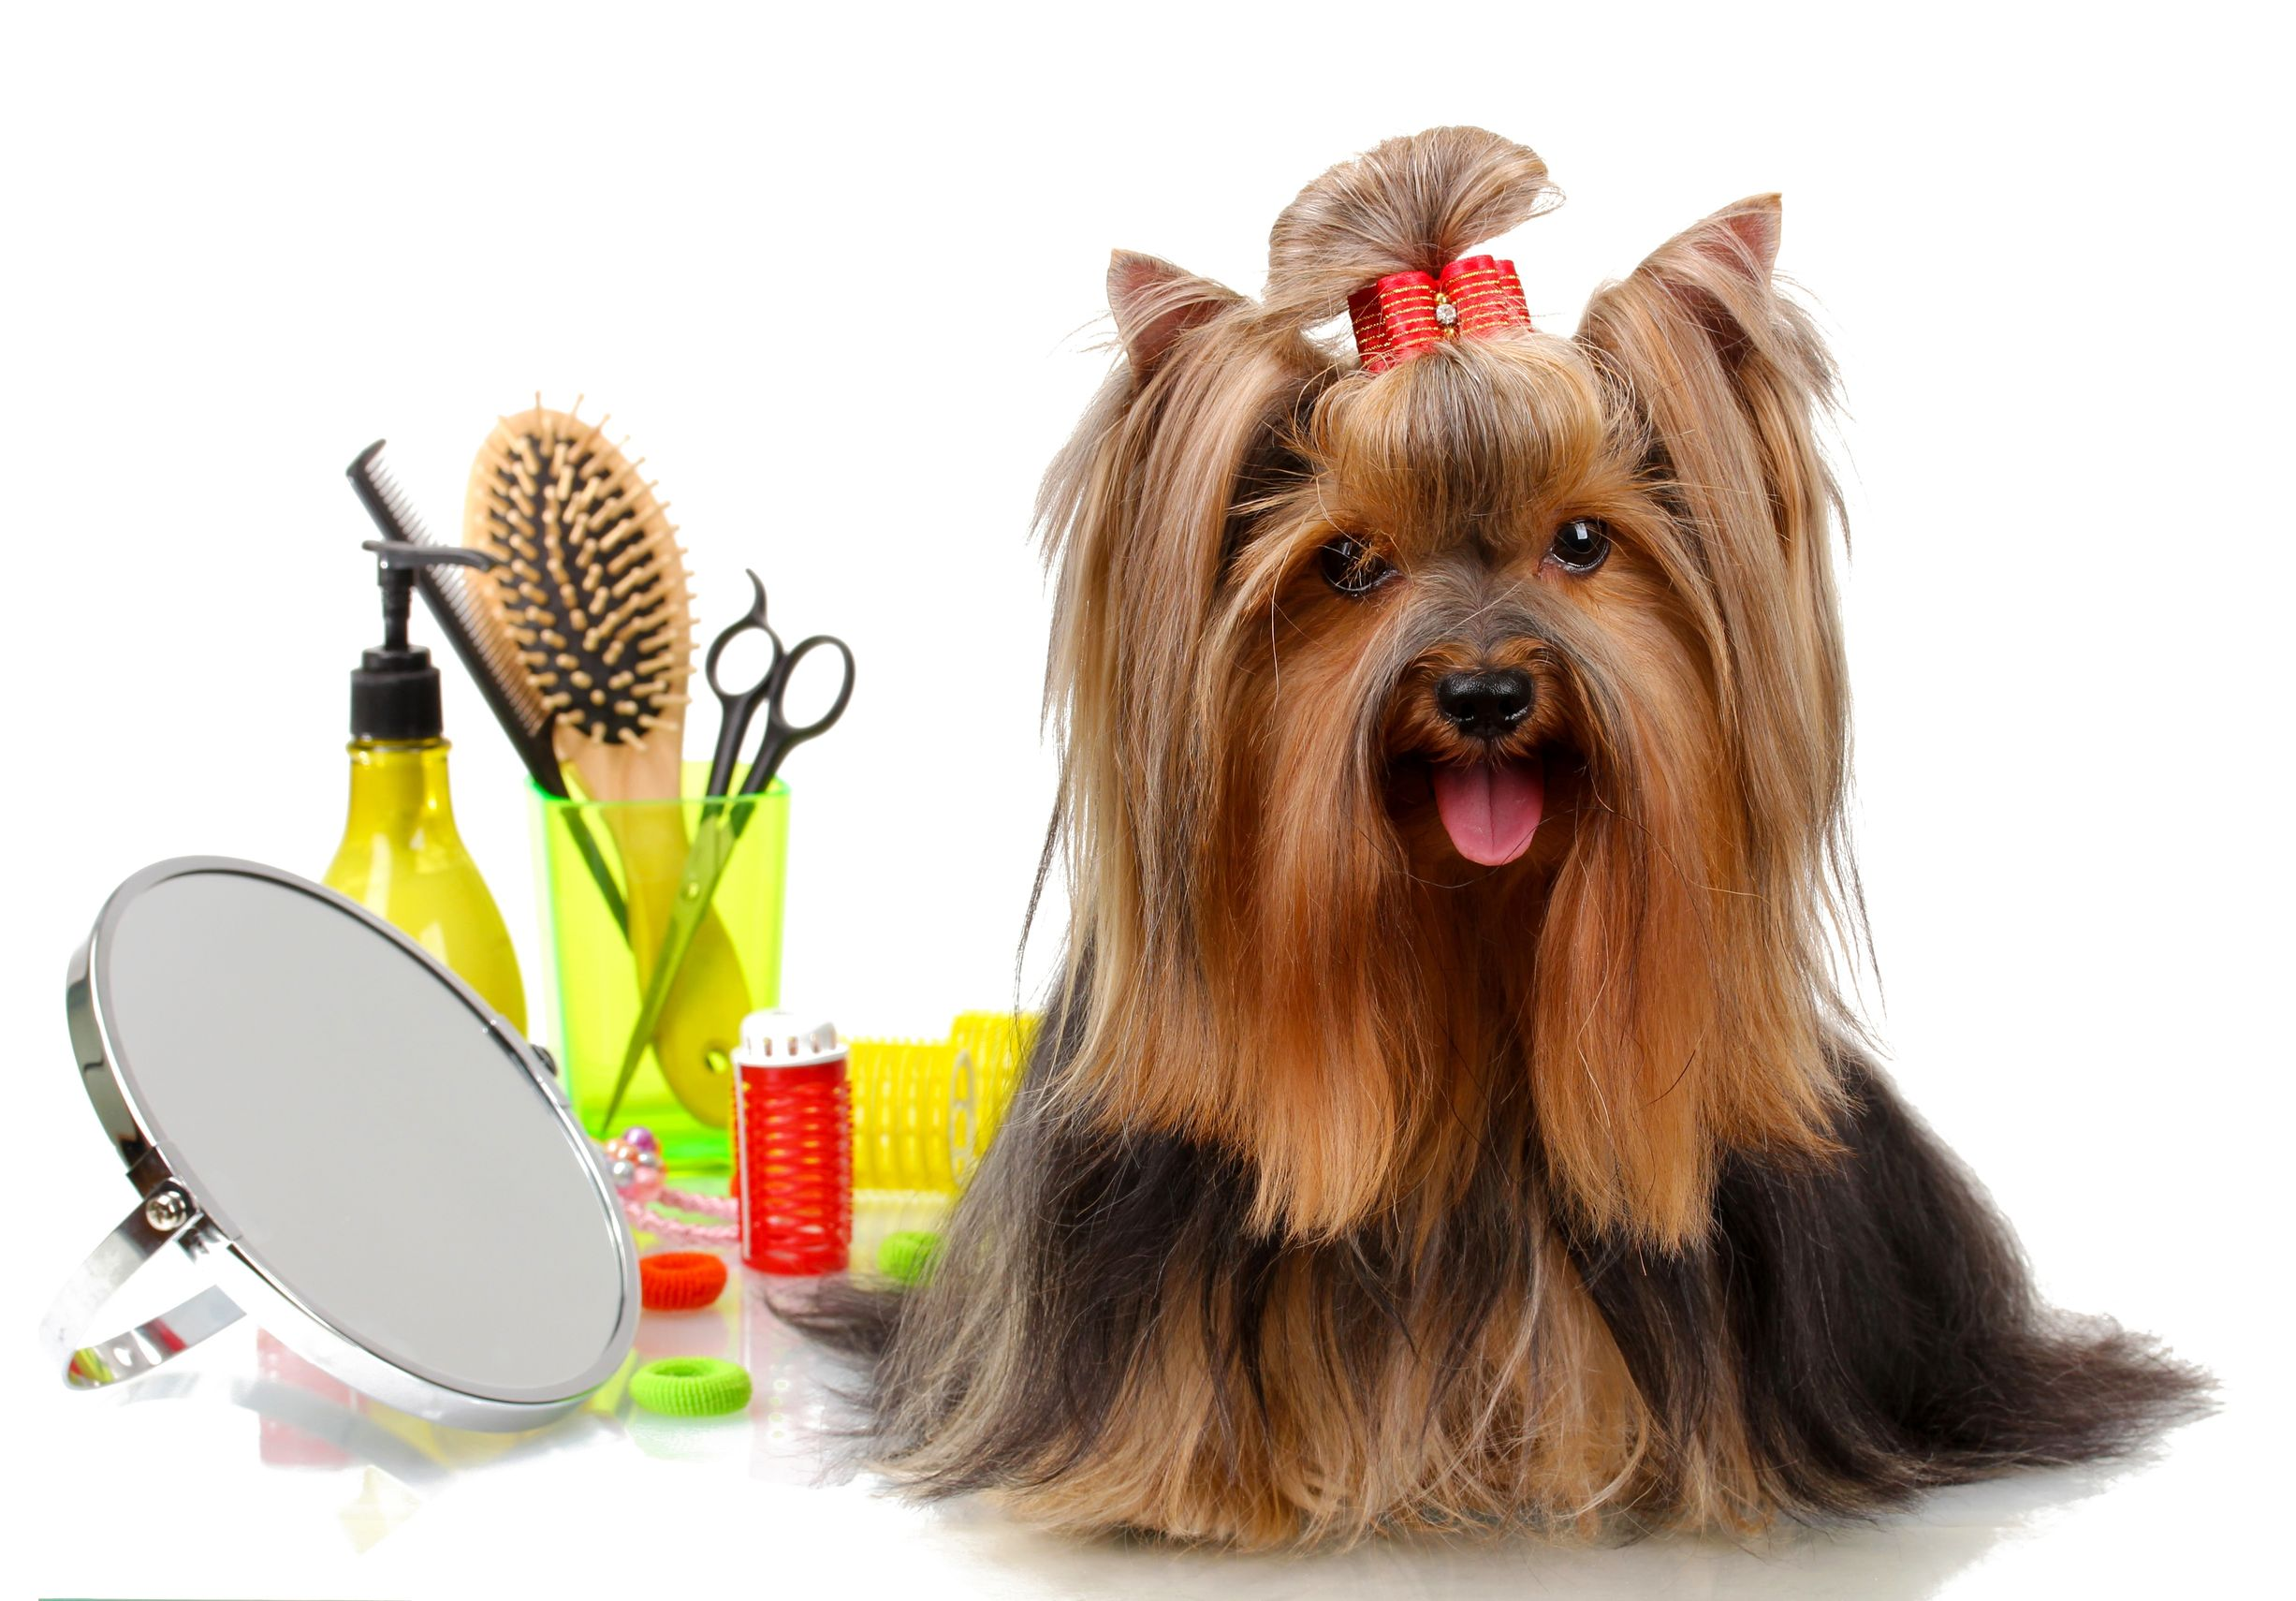 Precious Pets Dog Walking And Pet Care Services Bedfordshire